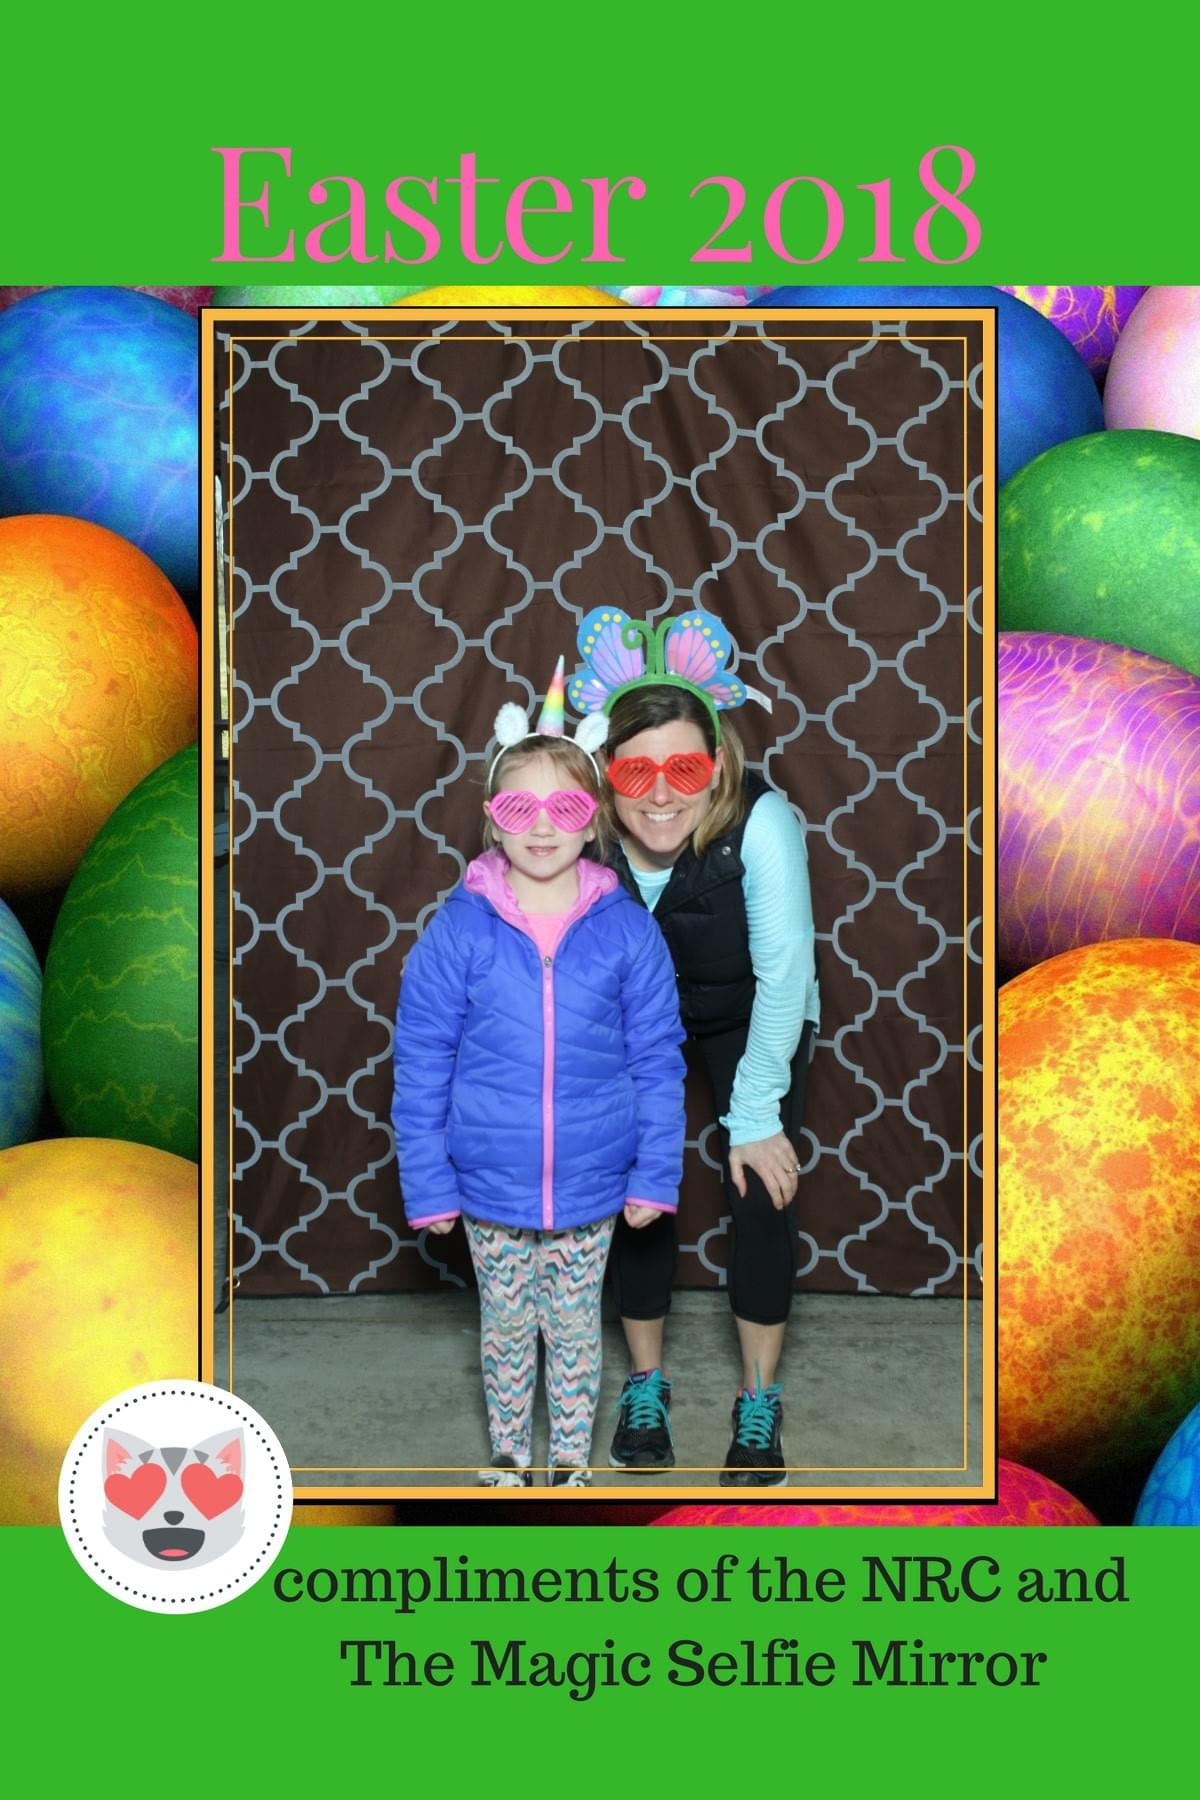 Easter fun with the Magic Selfie Mirror Photo Booth